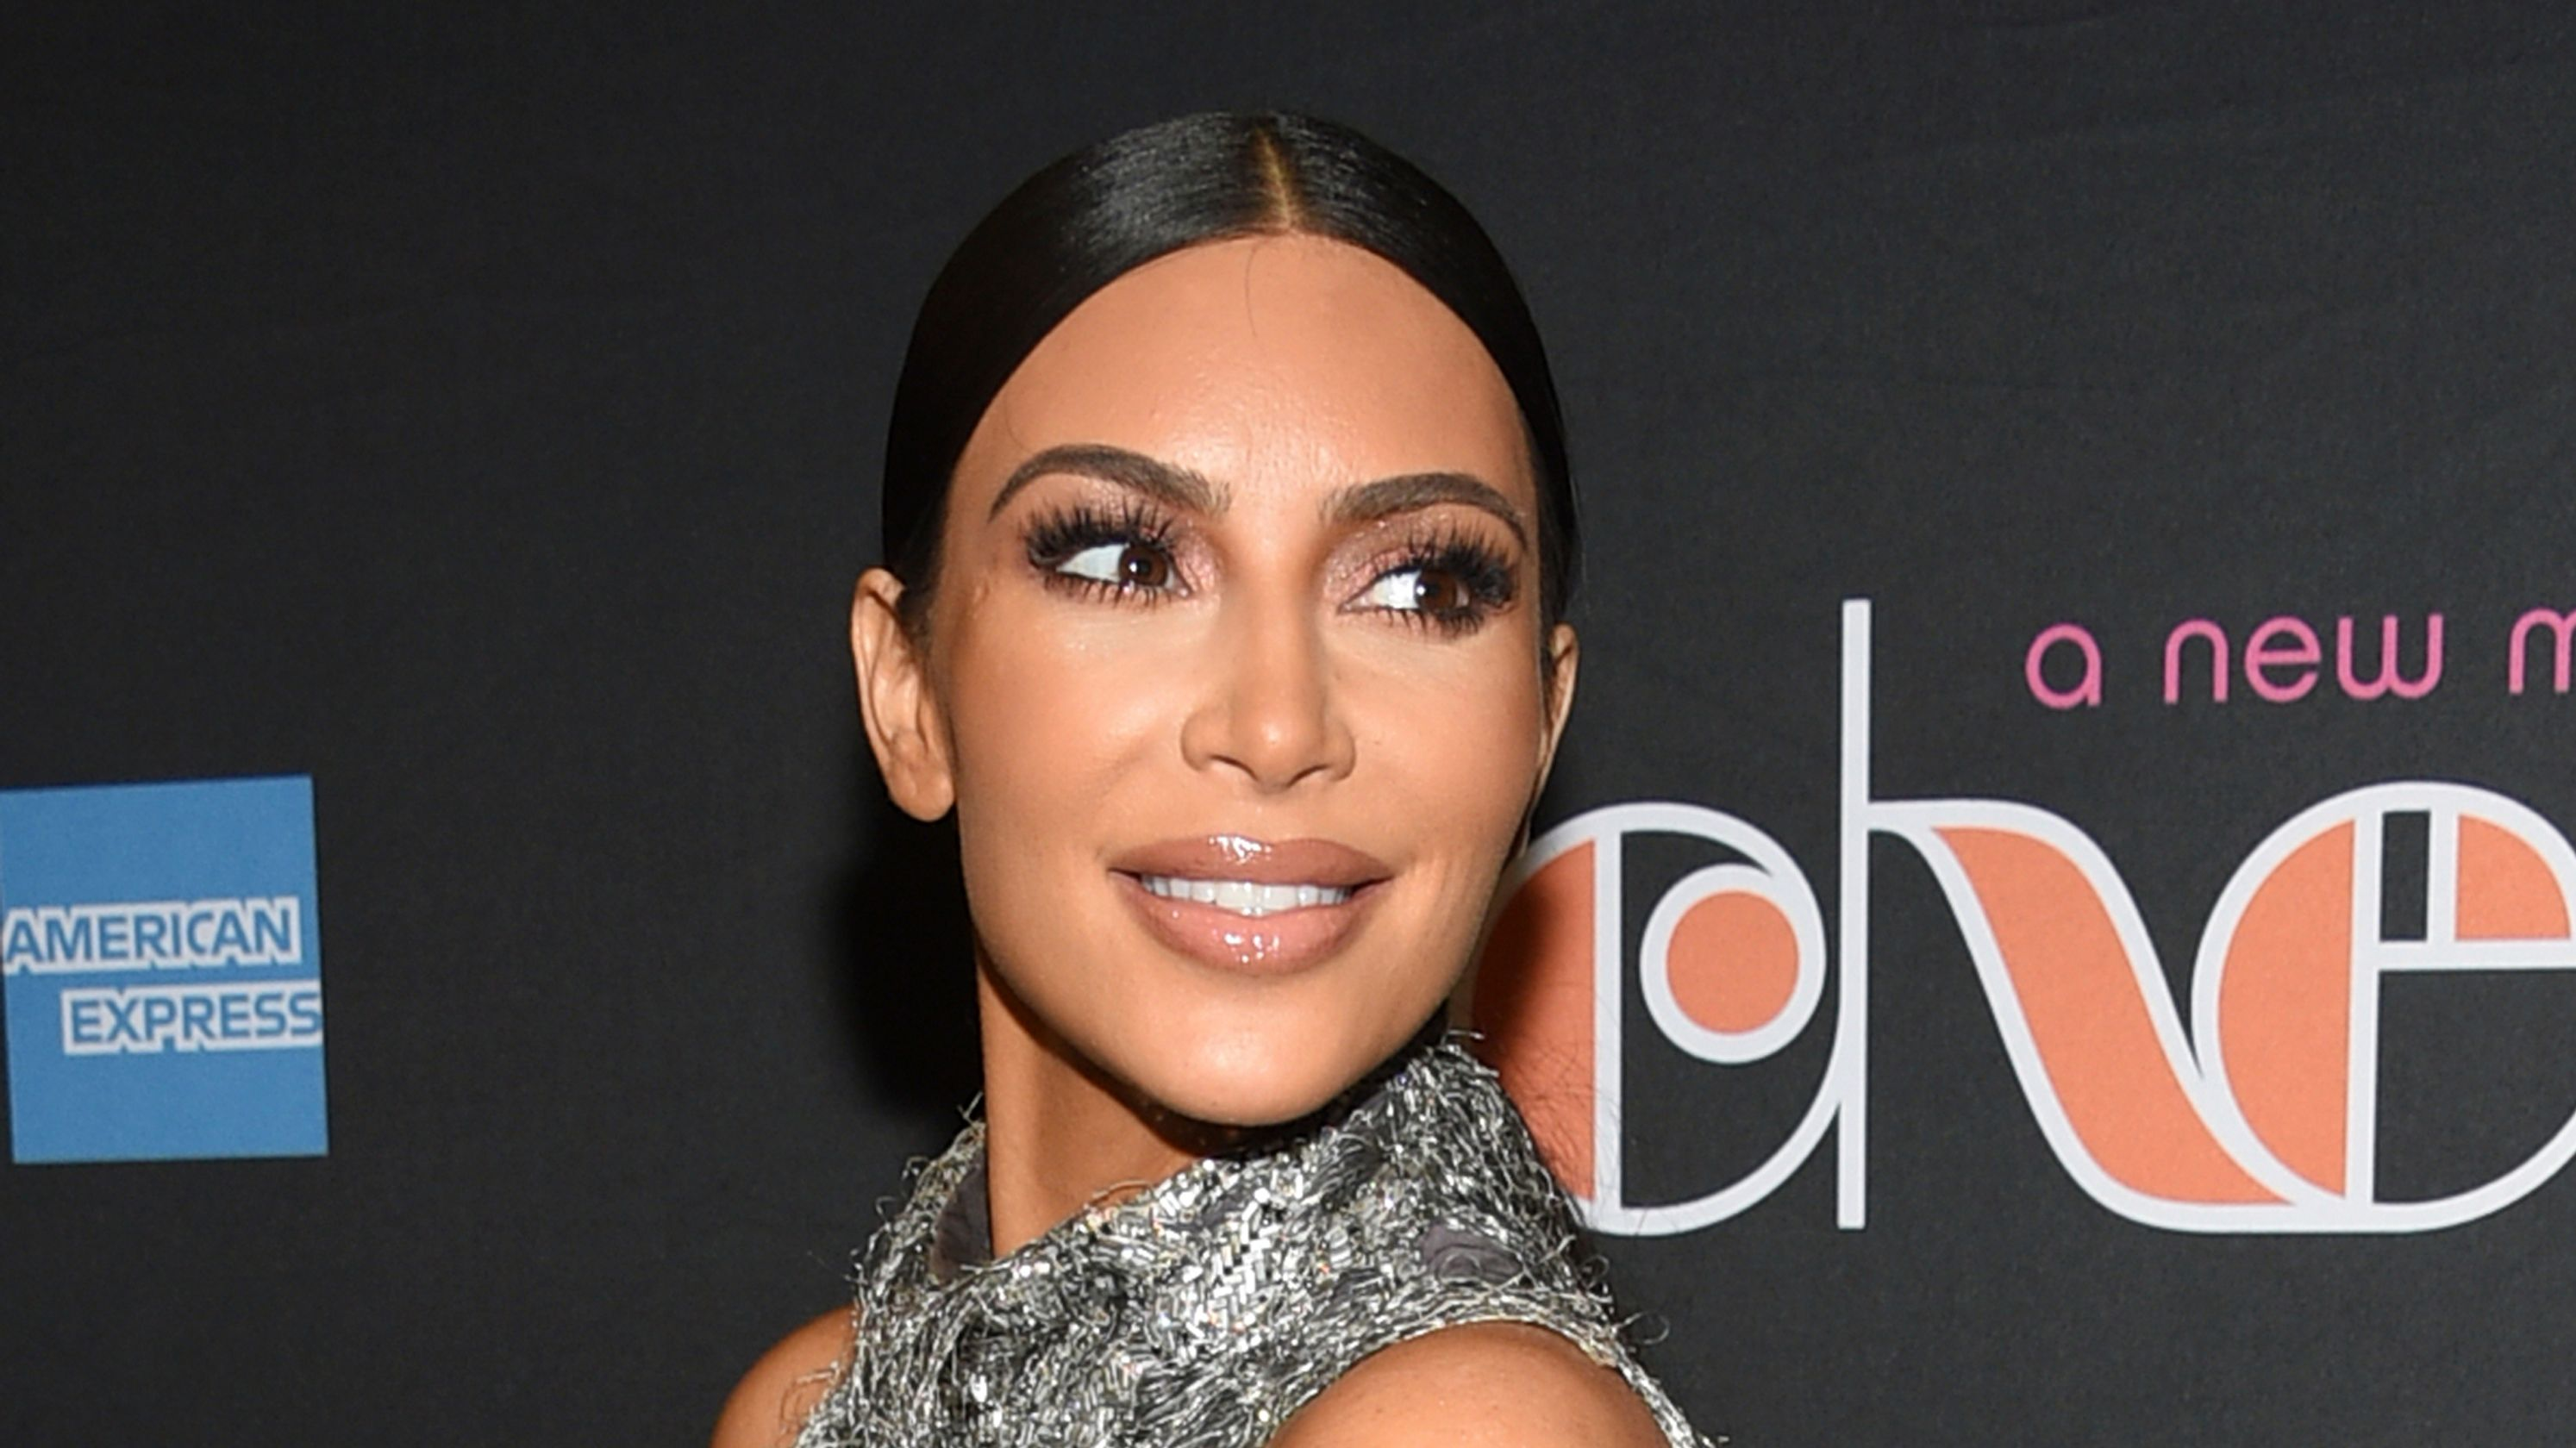 Kim Kardashian West: Kris Jenner feared I would be a 'crazy drug addict' after ecstasy